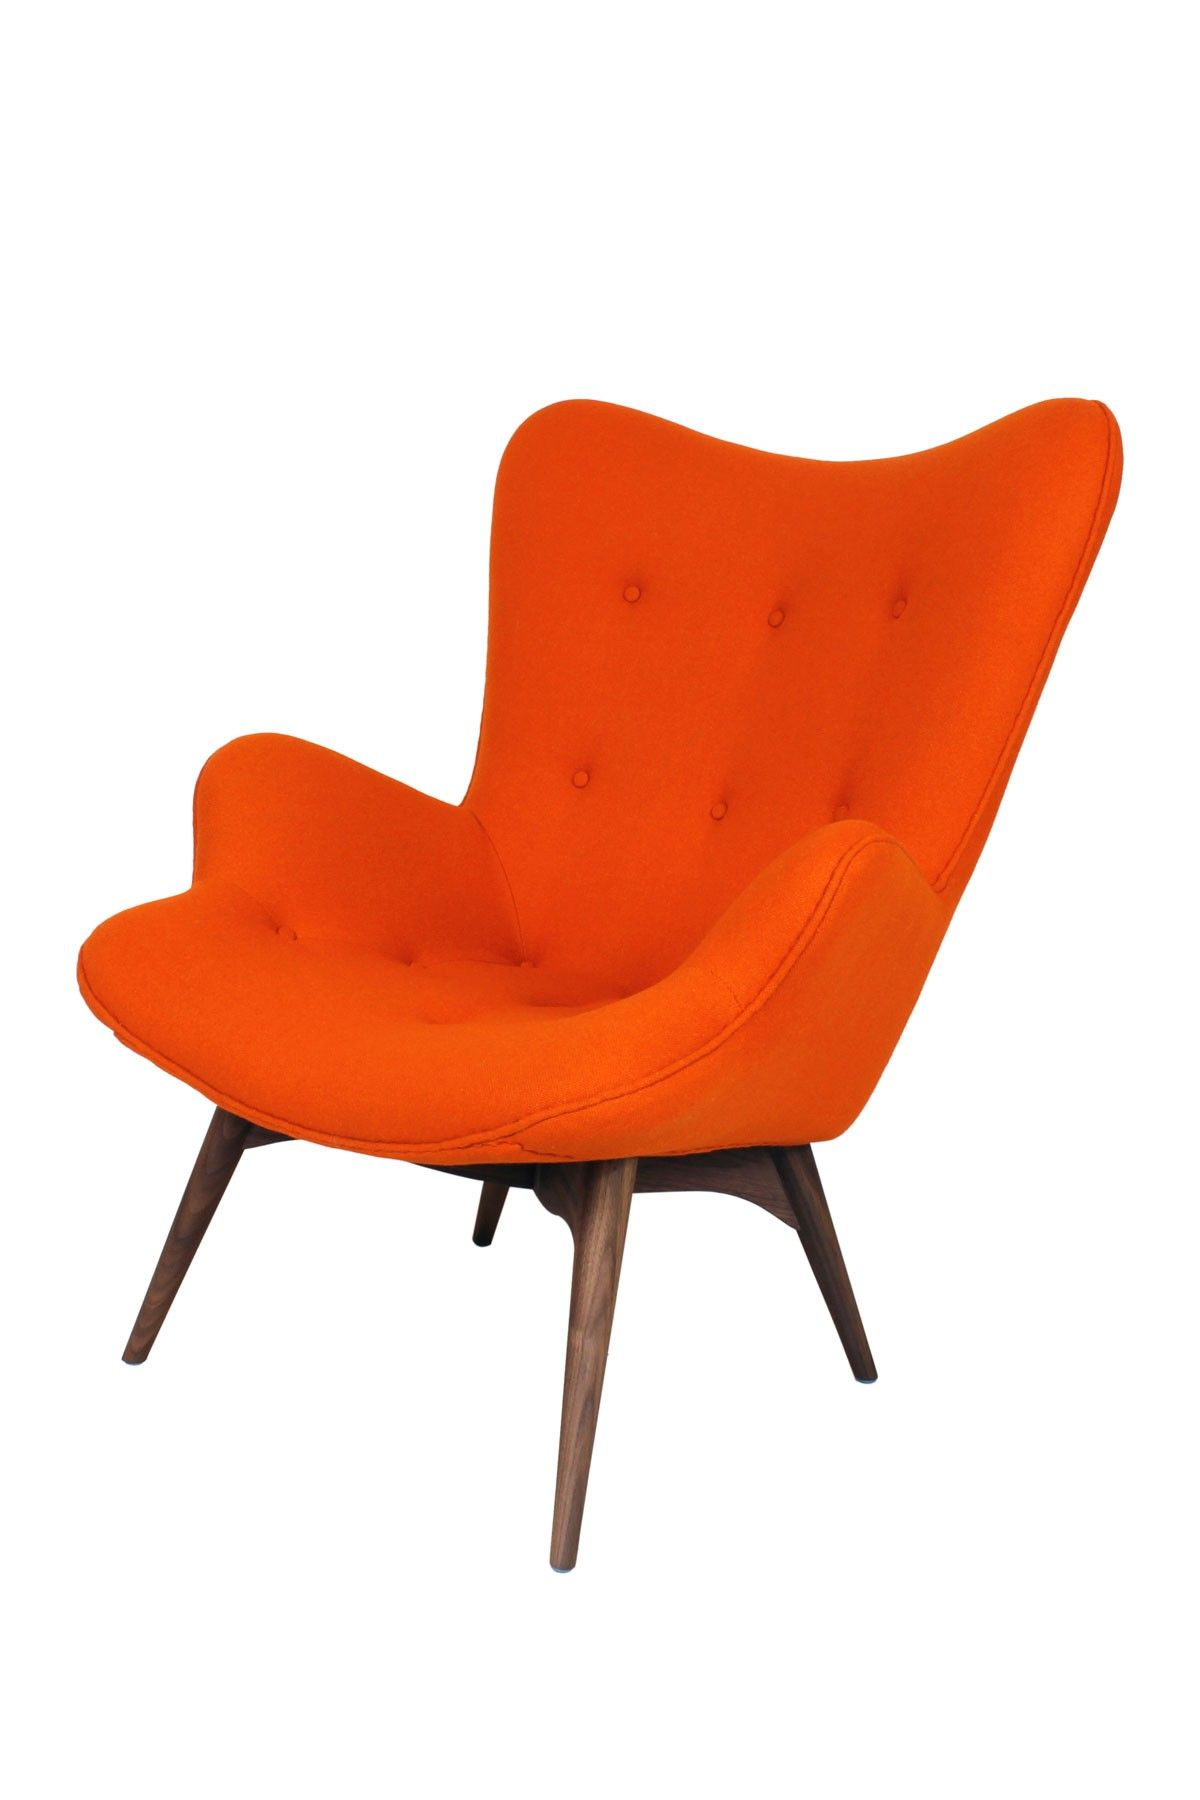 Control Brand The Teddy Bear Orange Chair Furniture Upholstered Chairs My Furniture